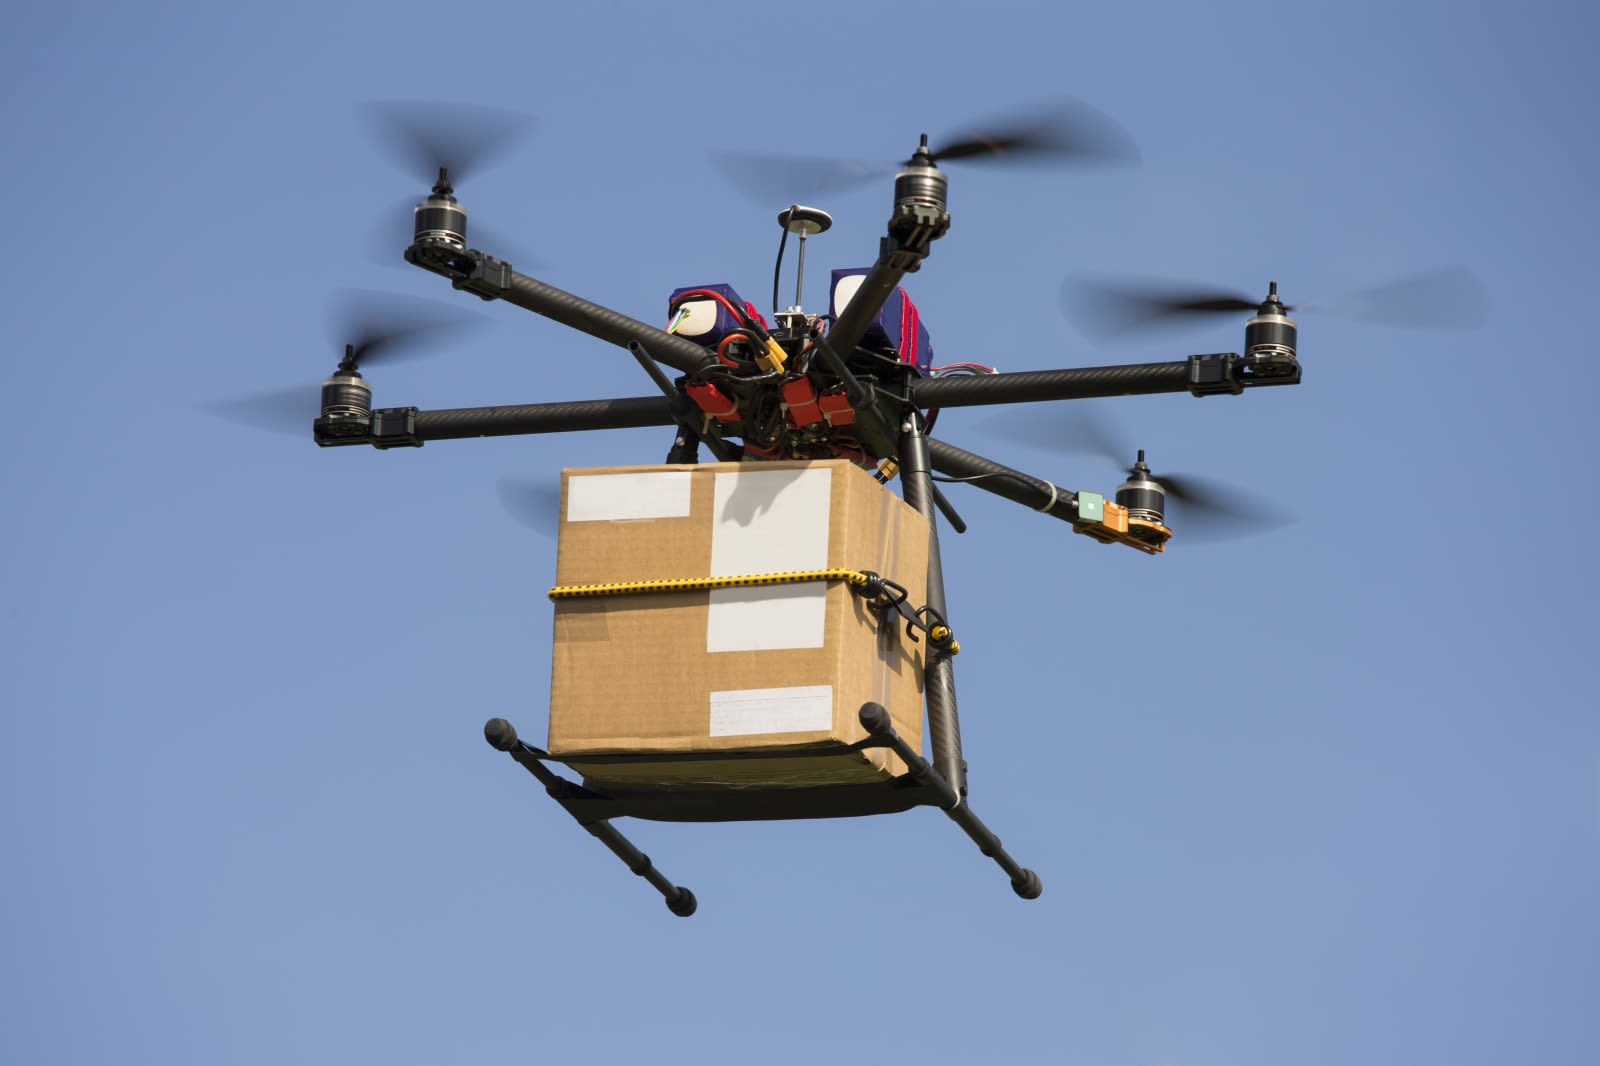 France is the first to use drones for its national mail service